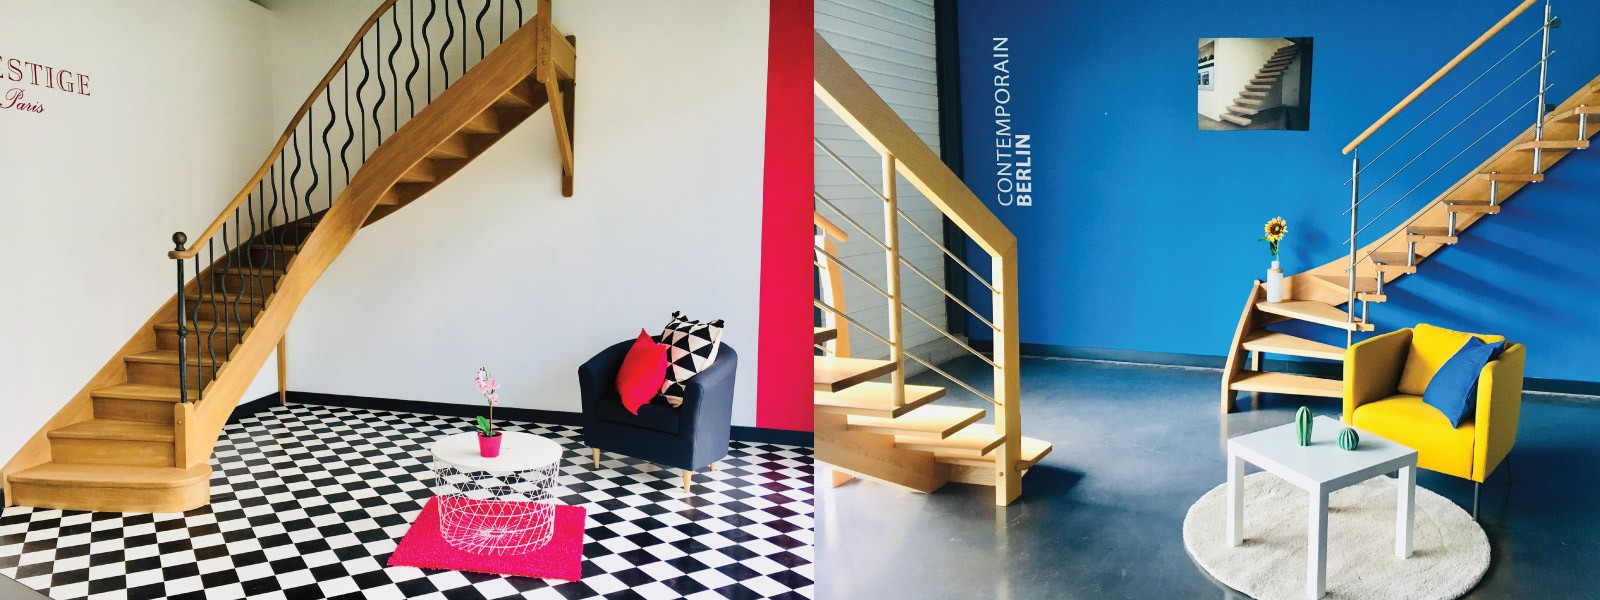 French stairs coming soon in arizona, a stairs showroom will open in Scottdale